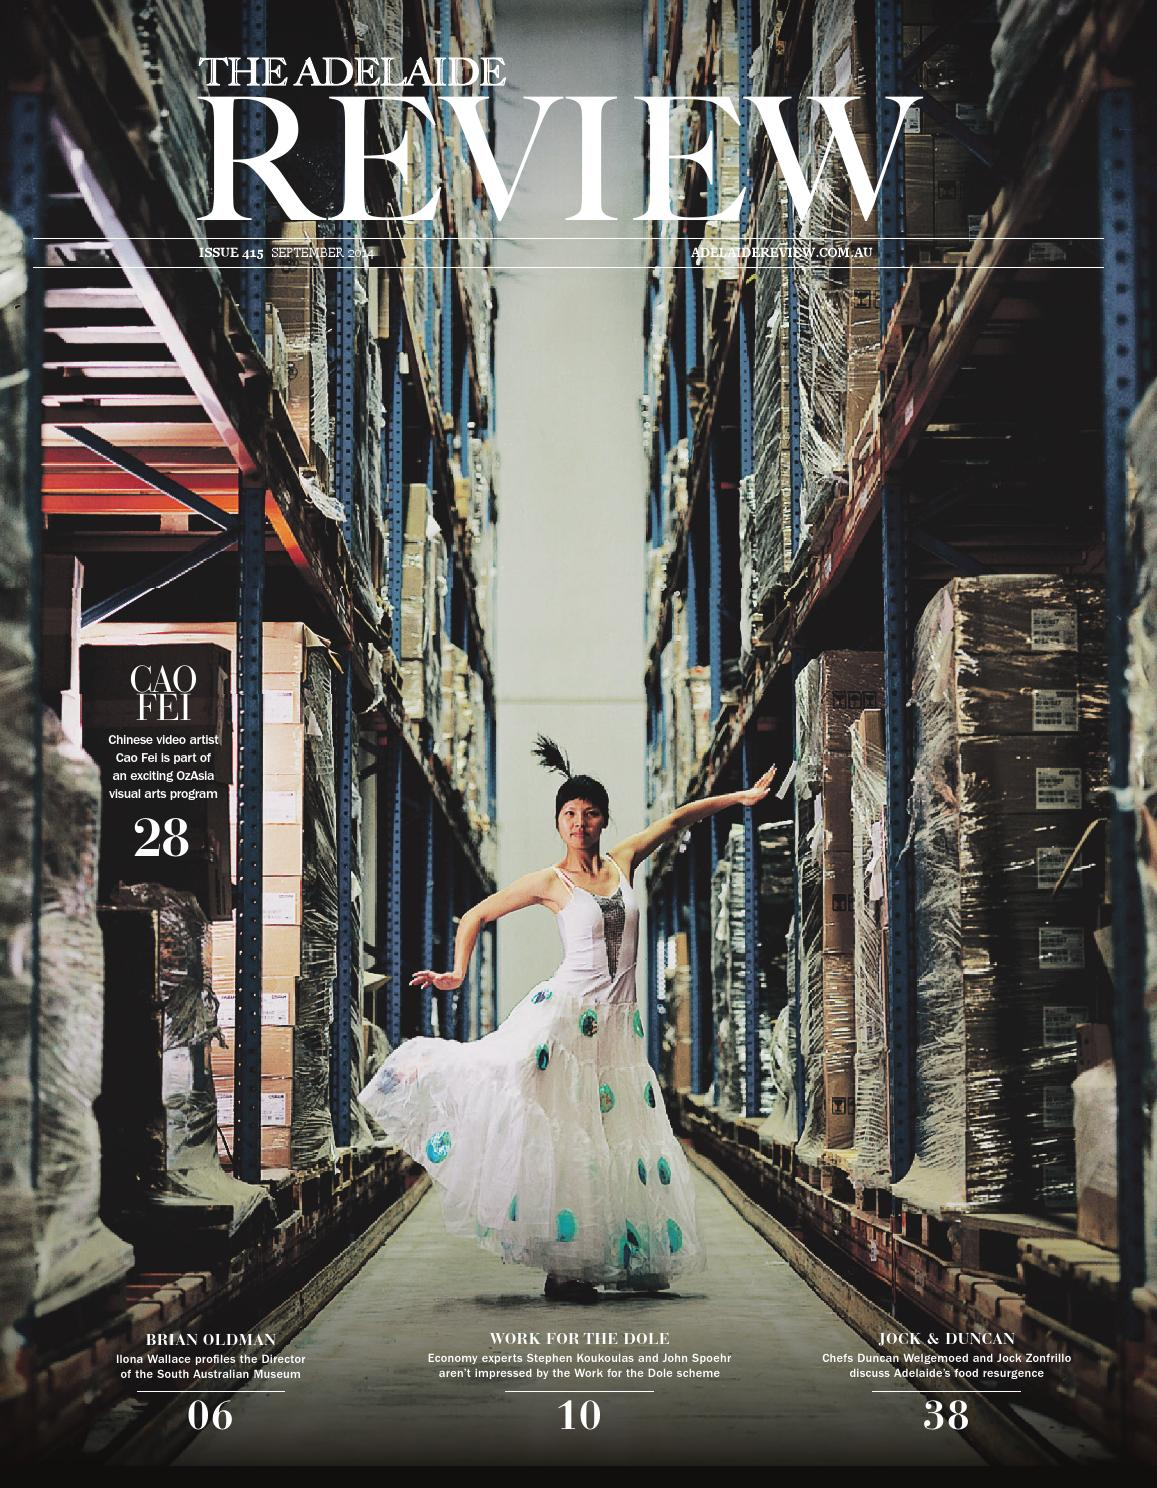 07fd25534a The Adelaide Review - September Issue by The Adelaide Review - issuu